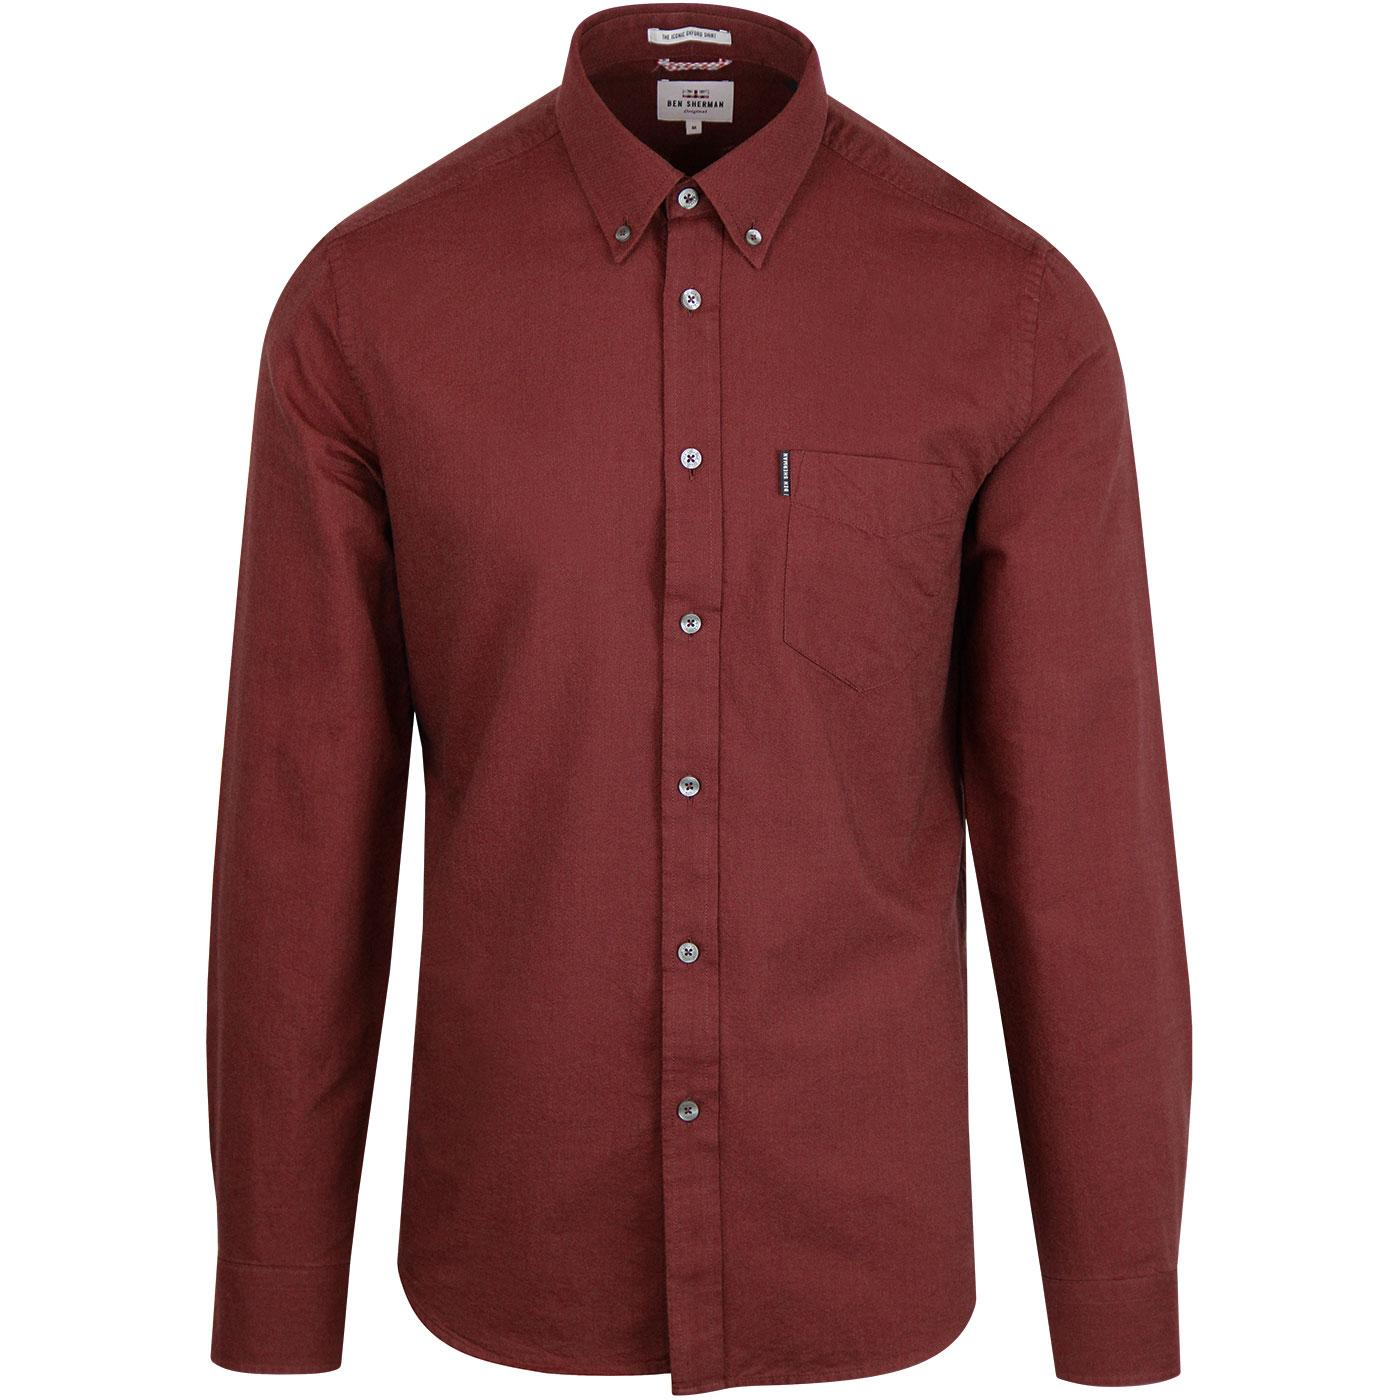 BEN SHERMAN Mod Button Down Oxford Shirt (Rose)